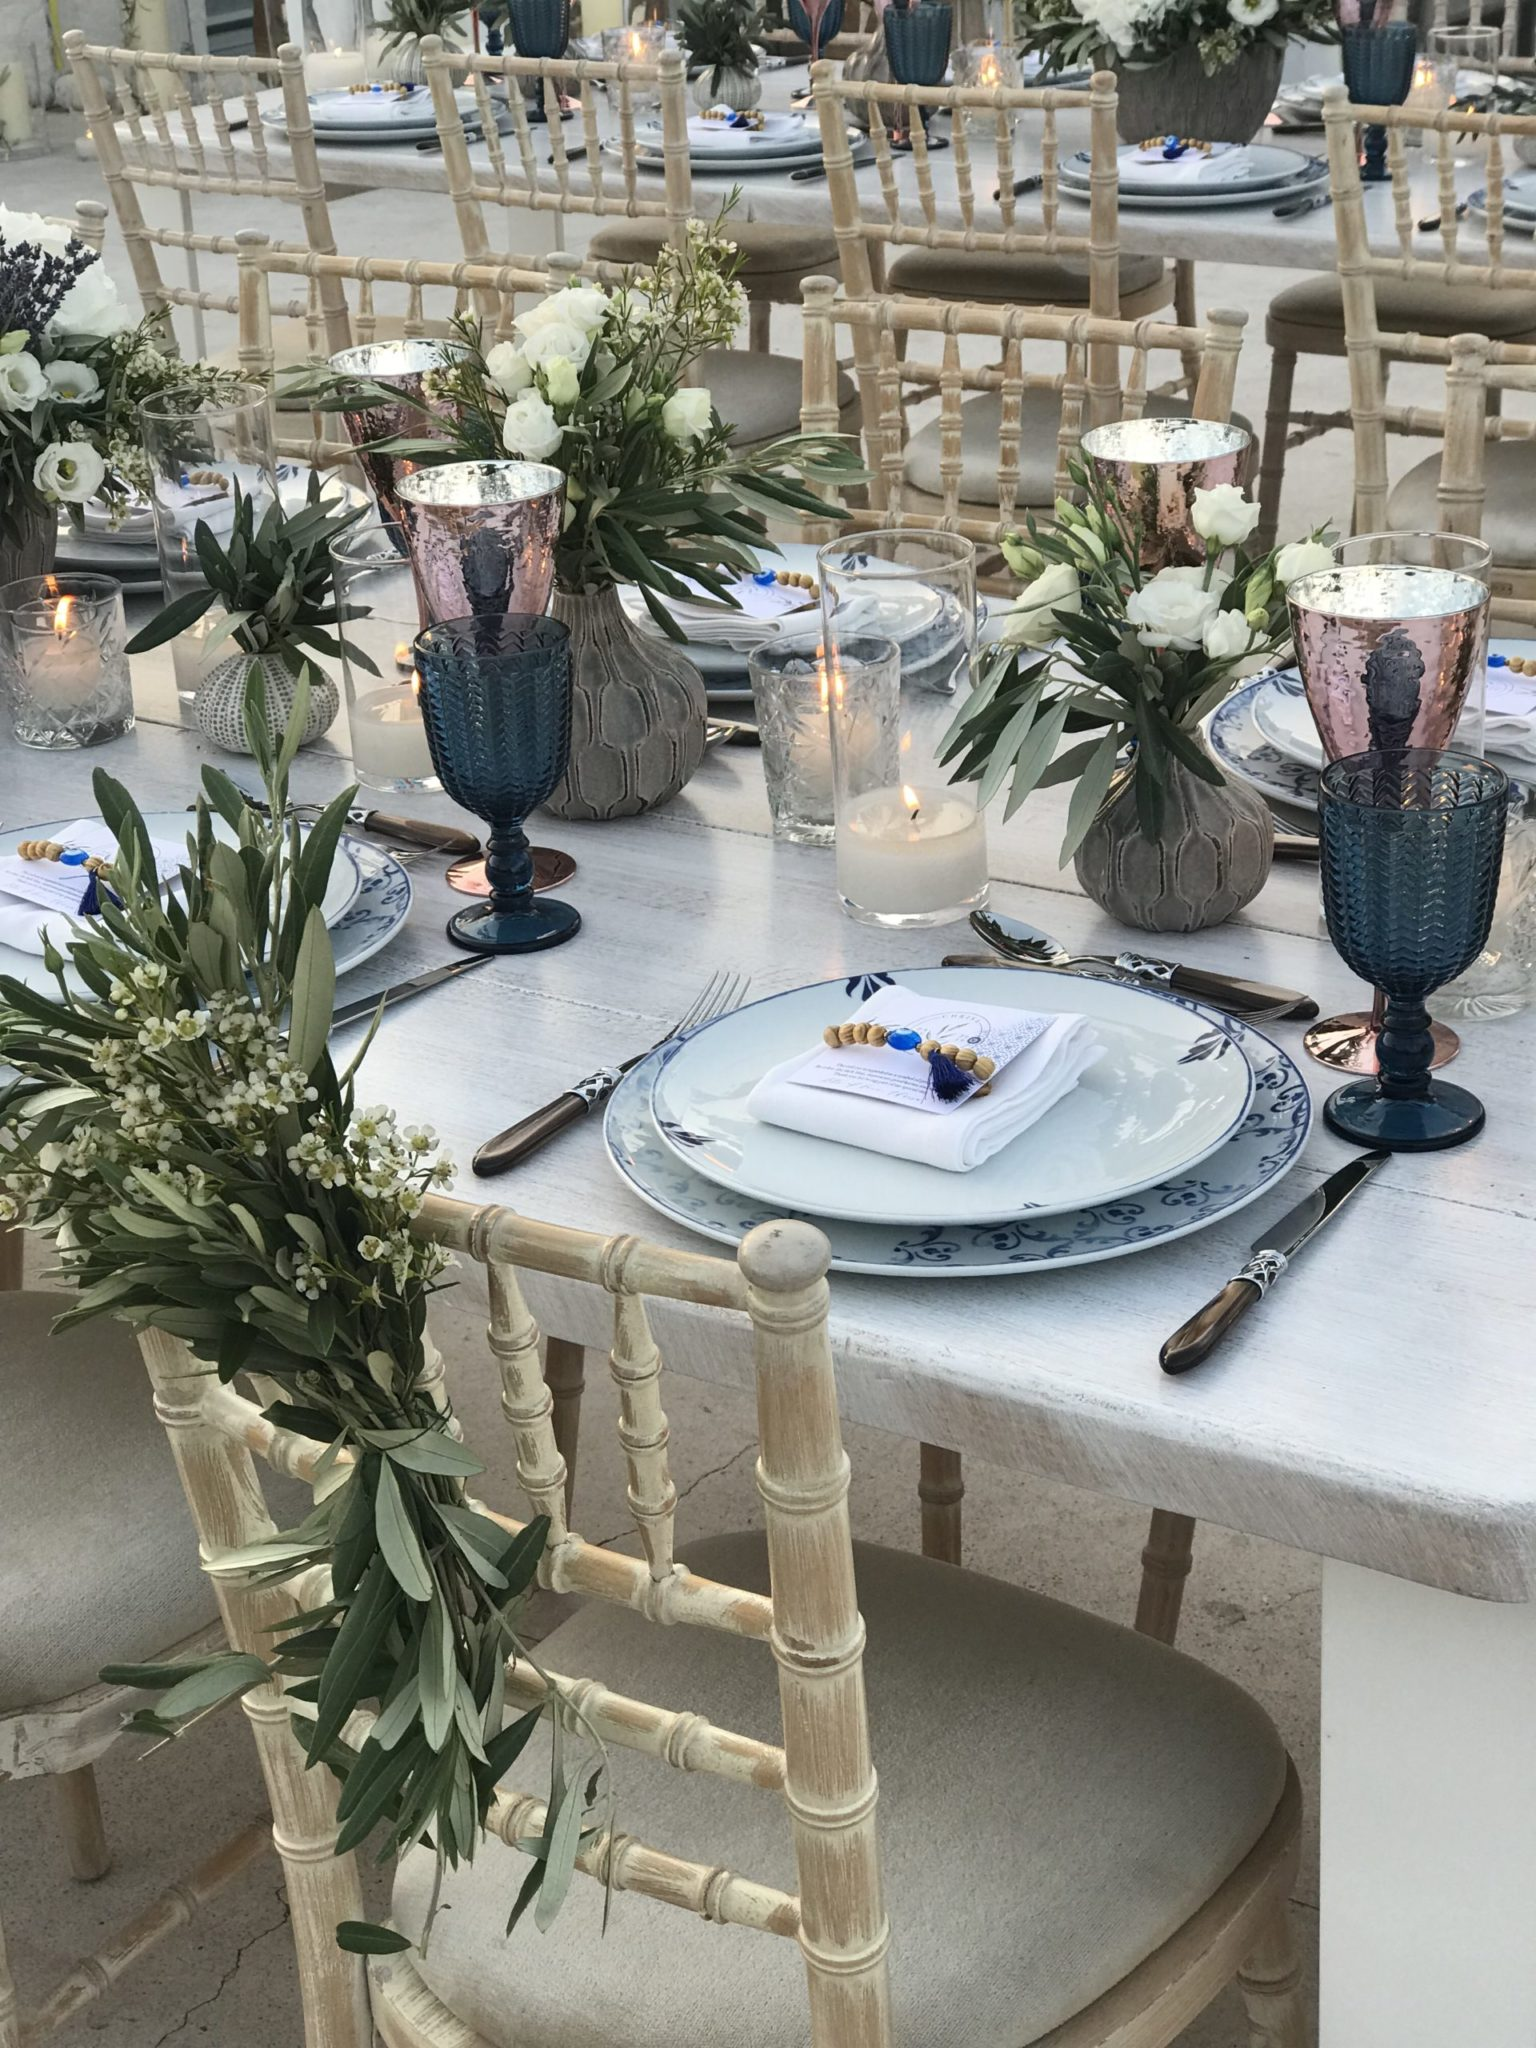 Totally Greek-party gifts-set up-close up